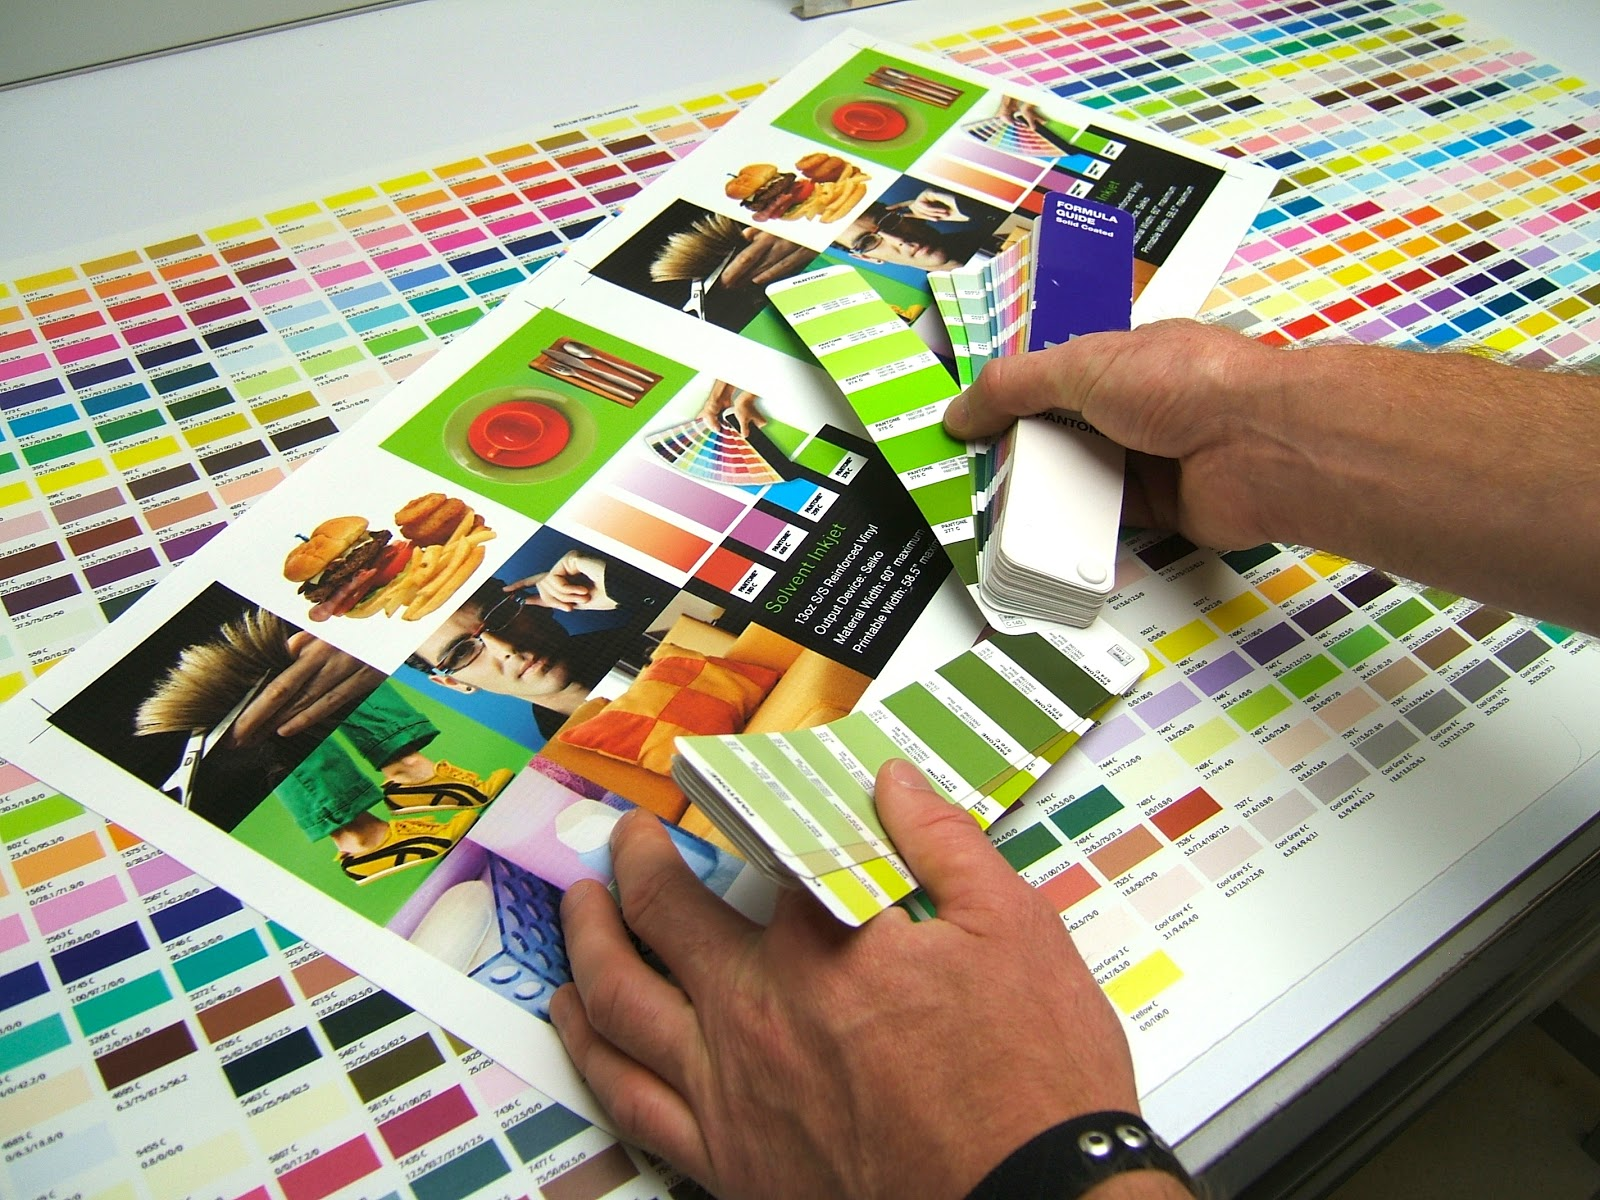 colorful image of hands holding a graphic layout surrounded by color swatches